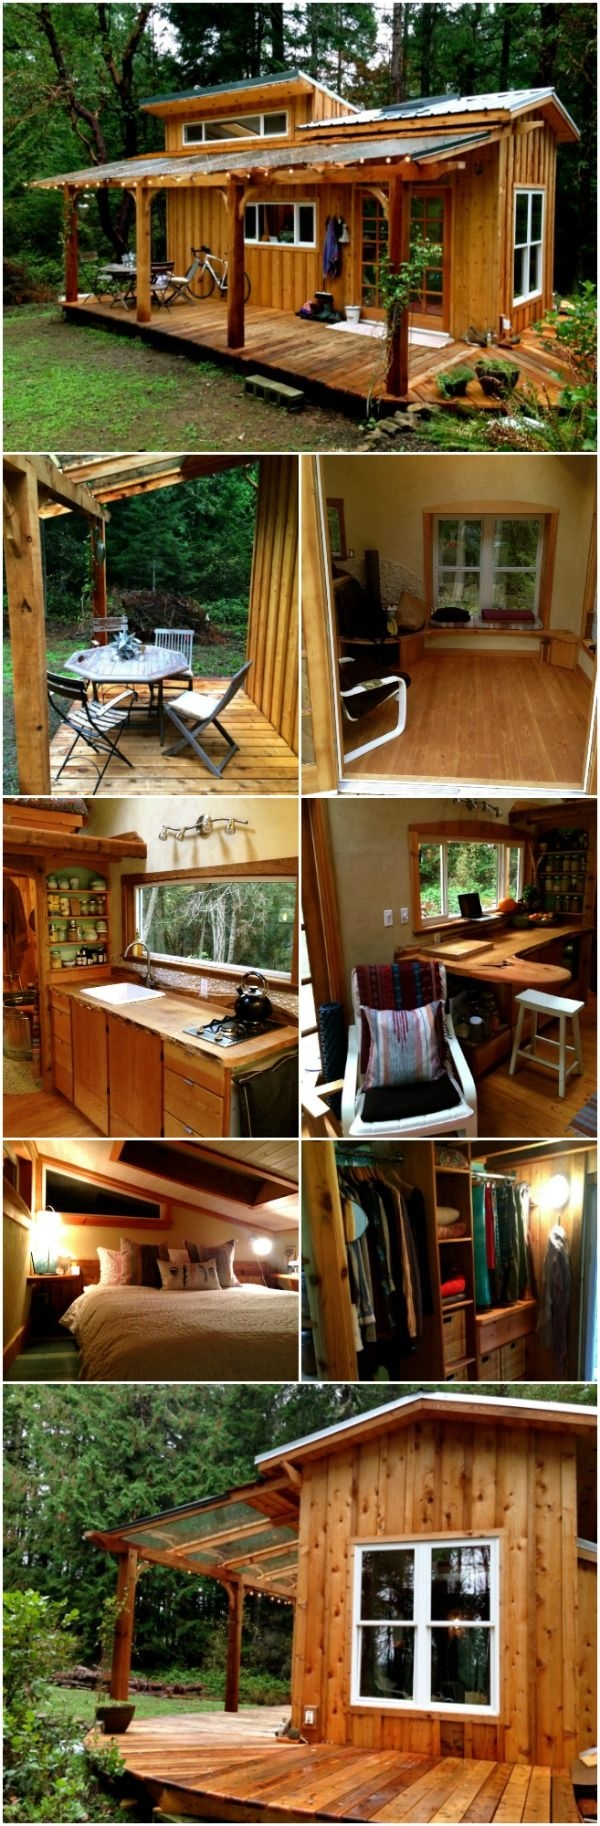 60 Small Mountain Cabin Plans with Loft New Tiny House tour Perfectly Rustic Tiny Mountain Log Cabin In British